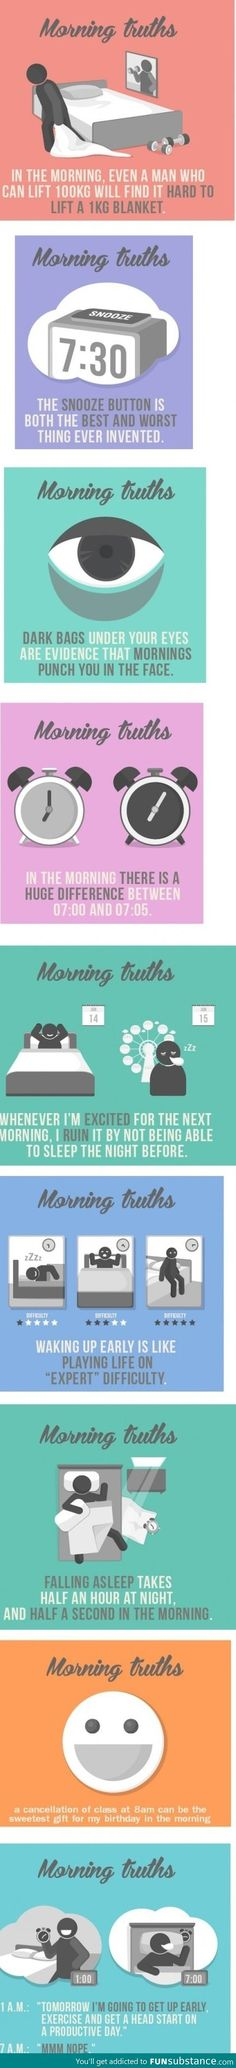 Morning truths, that last one is so true!